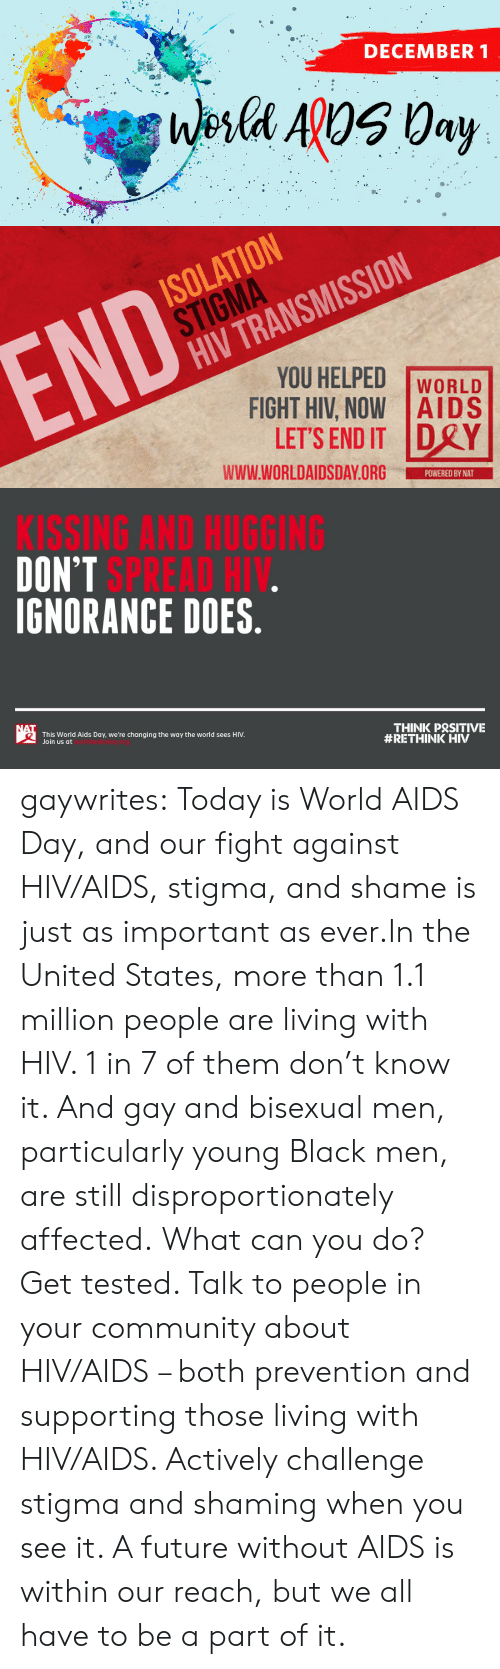 states: DECEMBER 1  Wesla ApOS 0ay   ISOLATION  STIGMA  HIV TRANSMISSION  END  YOU HELPED  FIGHT HIV, NOW AIDS  LET'S END IT DRY  WORLD  www.WORLDAIDSDAY.ORG  POWERED BY NAT   KISSING AND HUGGING  DON'T SPREAD HIV.  IGNORANCE DOES.  NAT  THINK PRSITIVE  #RETHINK HIV  This World Aids Day, we're changing the way the world sees HIV.  Join us at gaywrites:  Today is World AIDS Day, and our fight against HIV/AIDS, stigma, and shame is just as important as ever.In the United States, more than 1.1 million people are living with HIV. 1 in 7 of them don't know it. And gay and bisexual men, particularly young Black men, are still disproportionately affected. What can you do? Get tested. Talk to people in your community about HIV/AIDS – both prevention and supporting those living with HIV/AIDS. Actively challenge stigma and shaming when you see it. A future without AIDS is within our reach, but we all have to be a part of it.